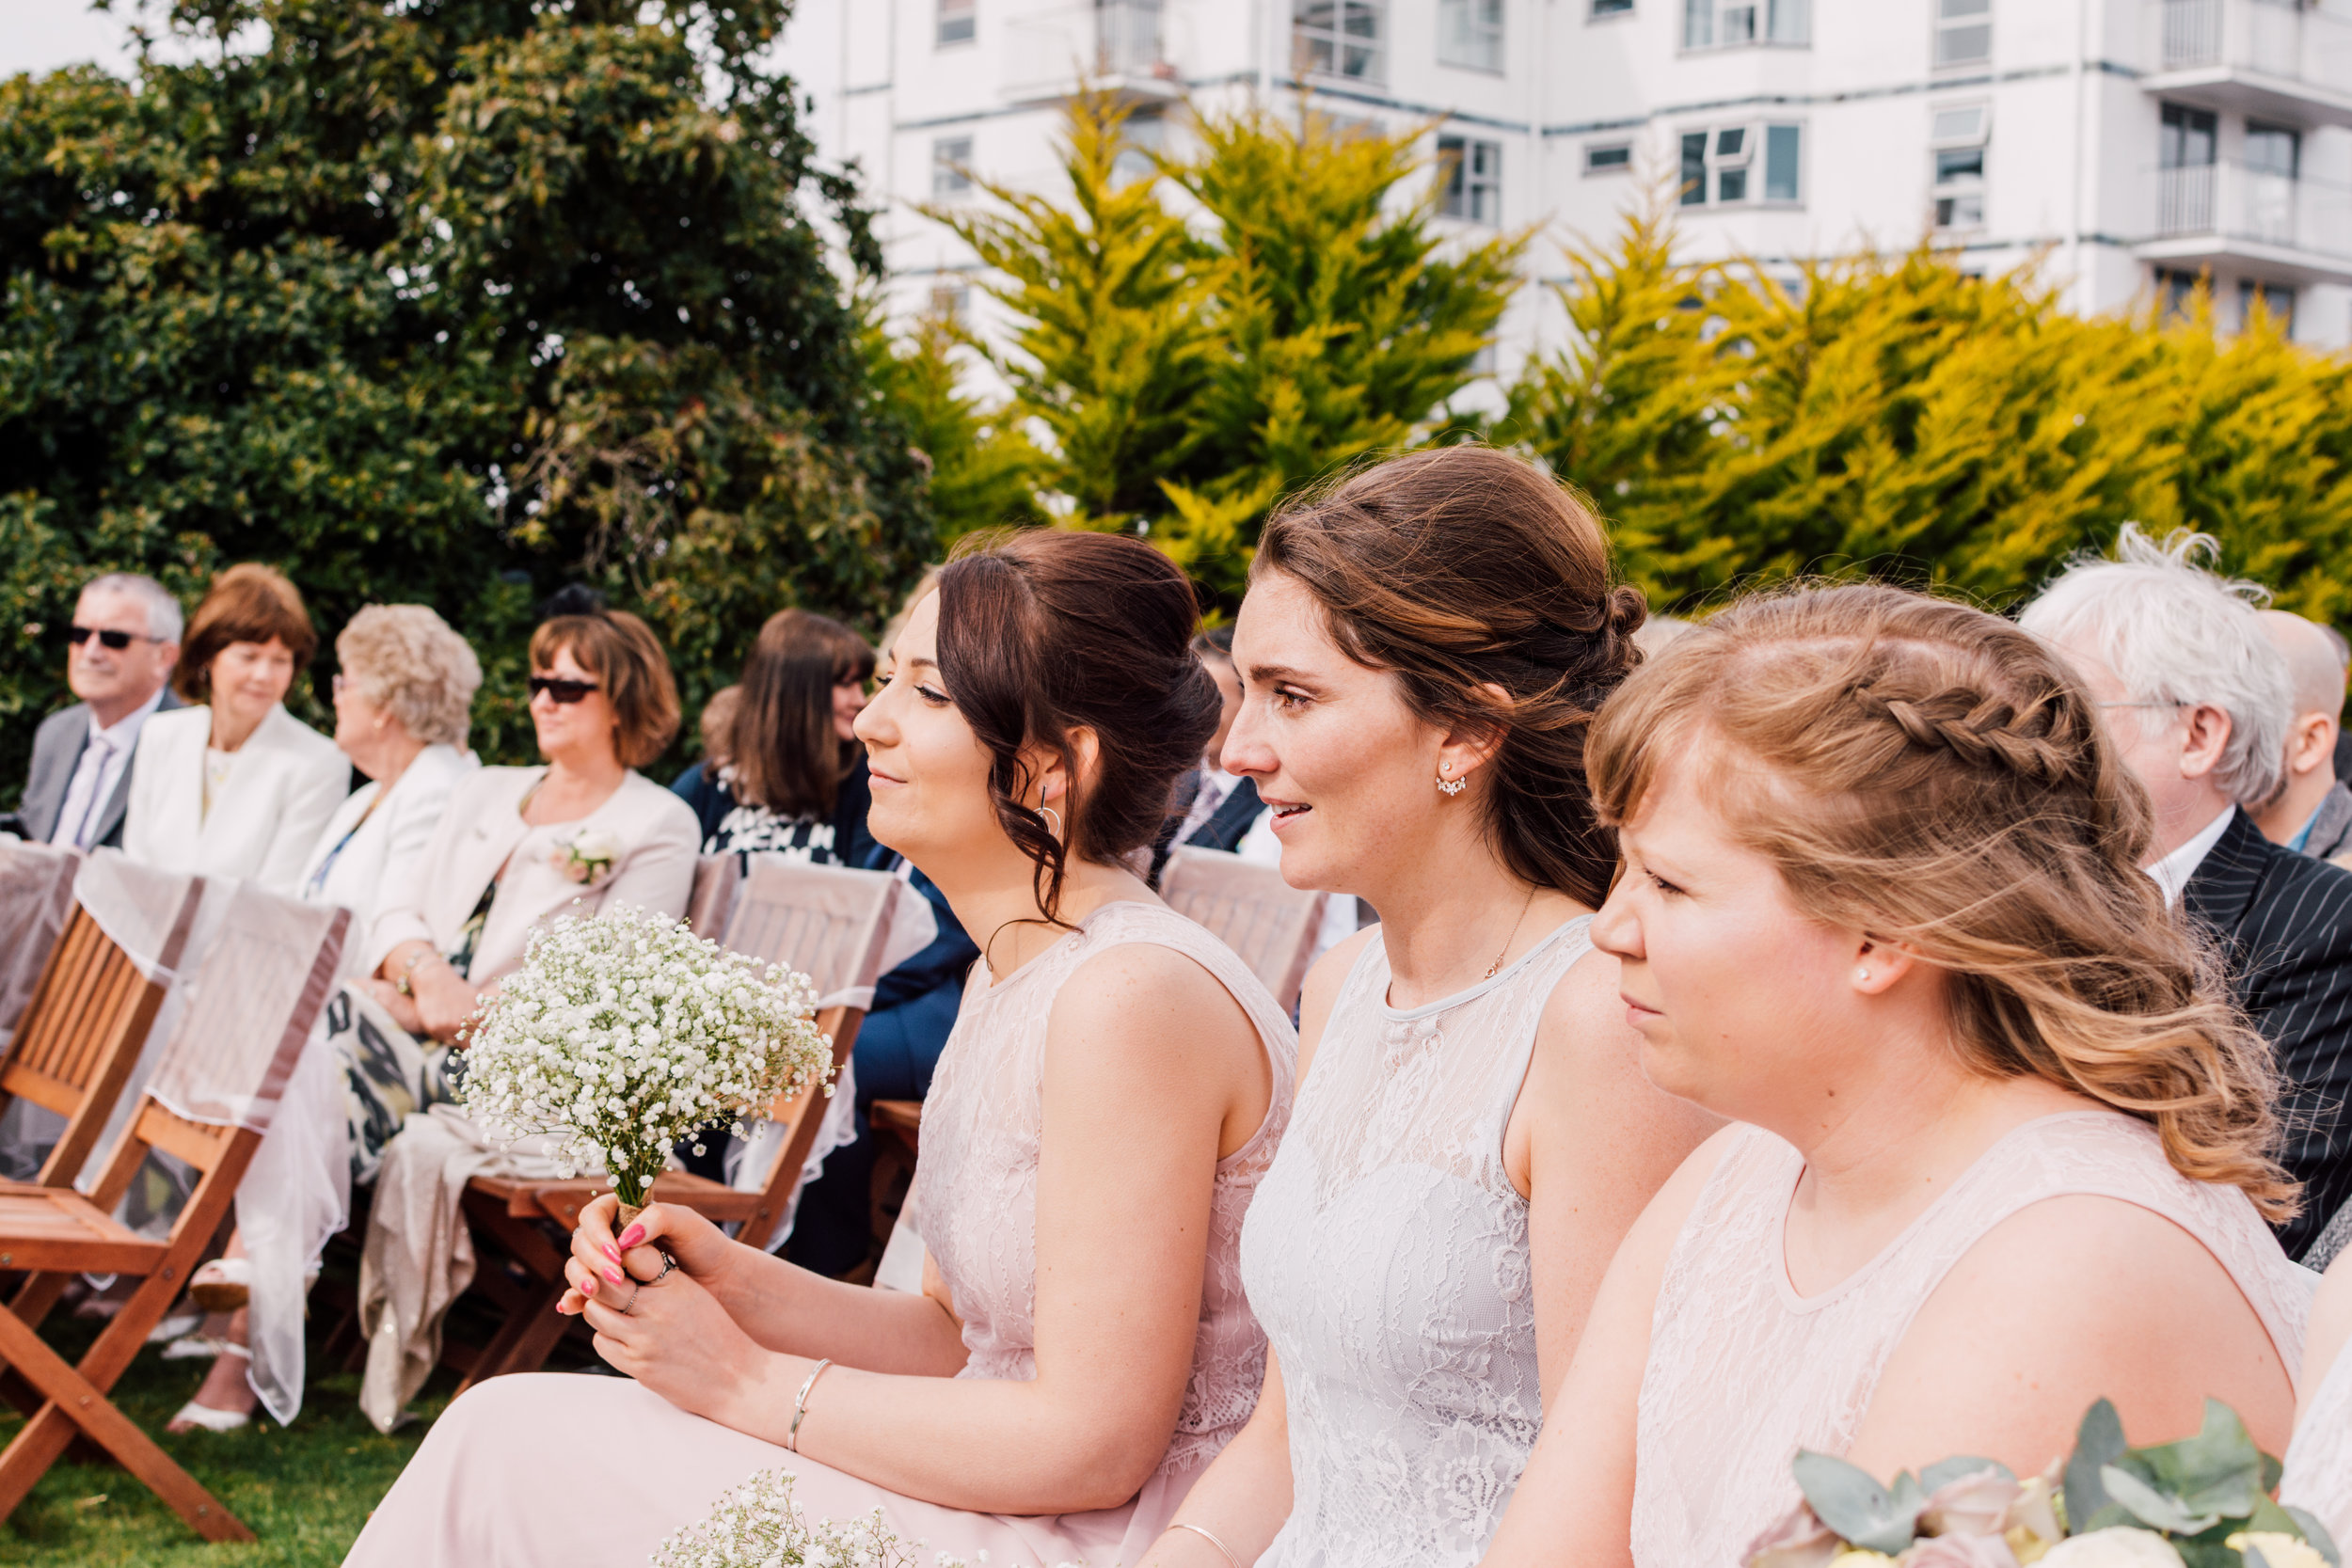 RGWPHOTOS_LEWIS+LUCY_6583.jpg